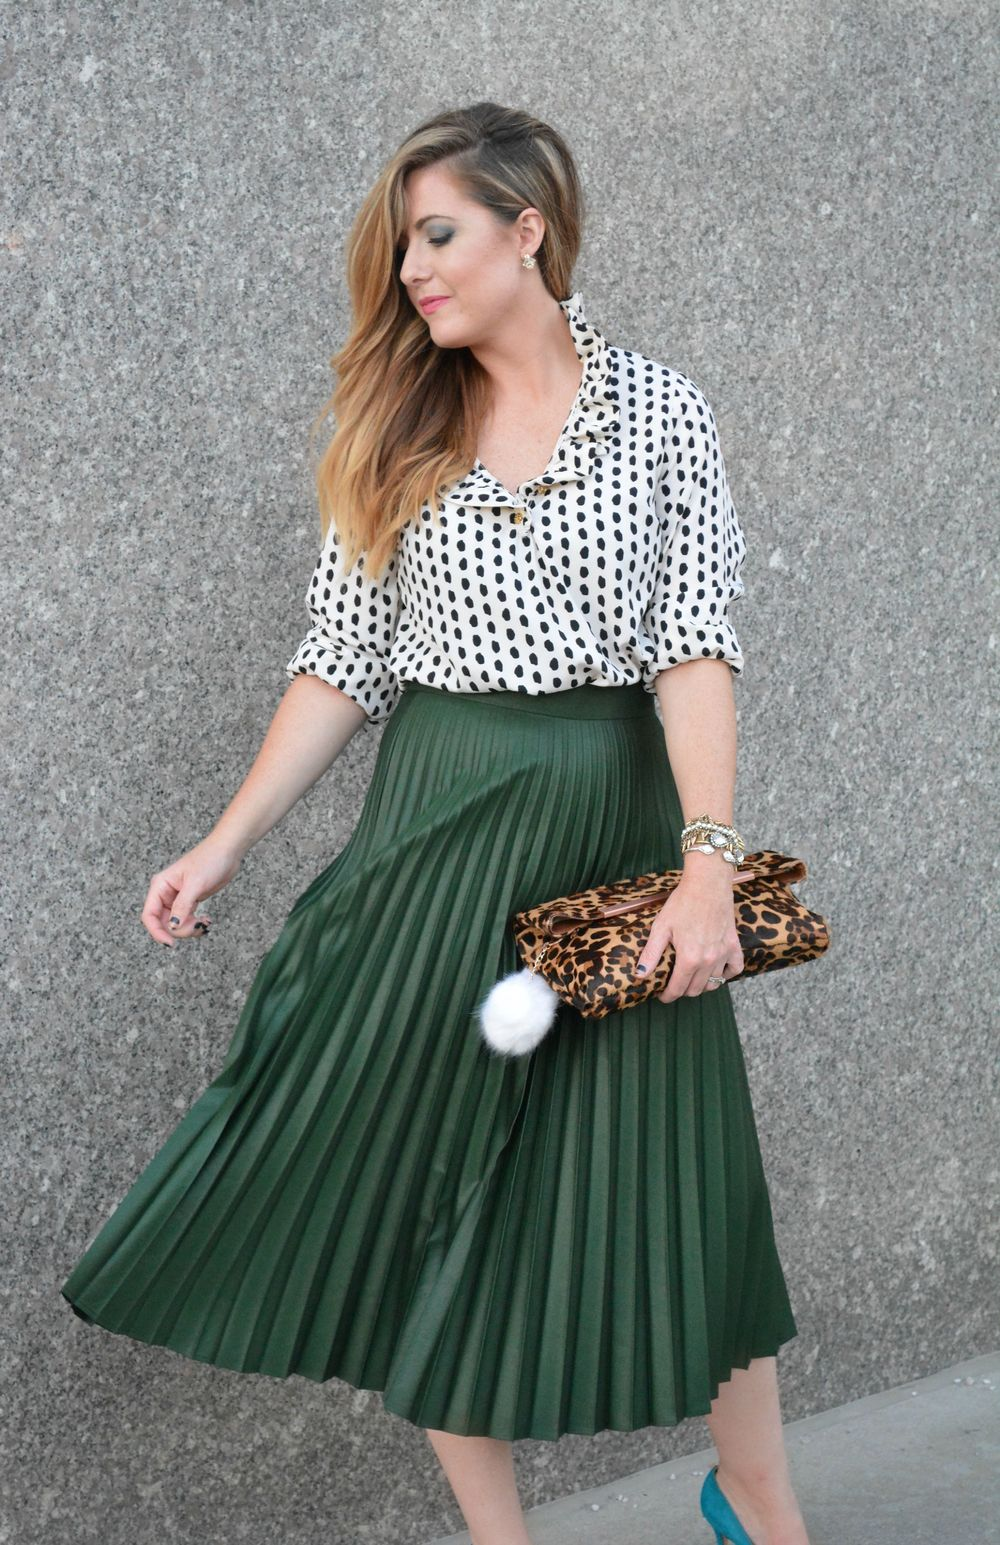 Black and white polka dot top with Zara green pleated midi skirt on Sophisticaited.com